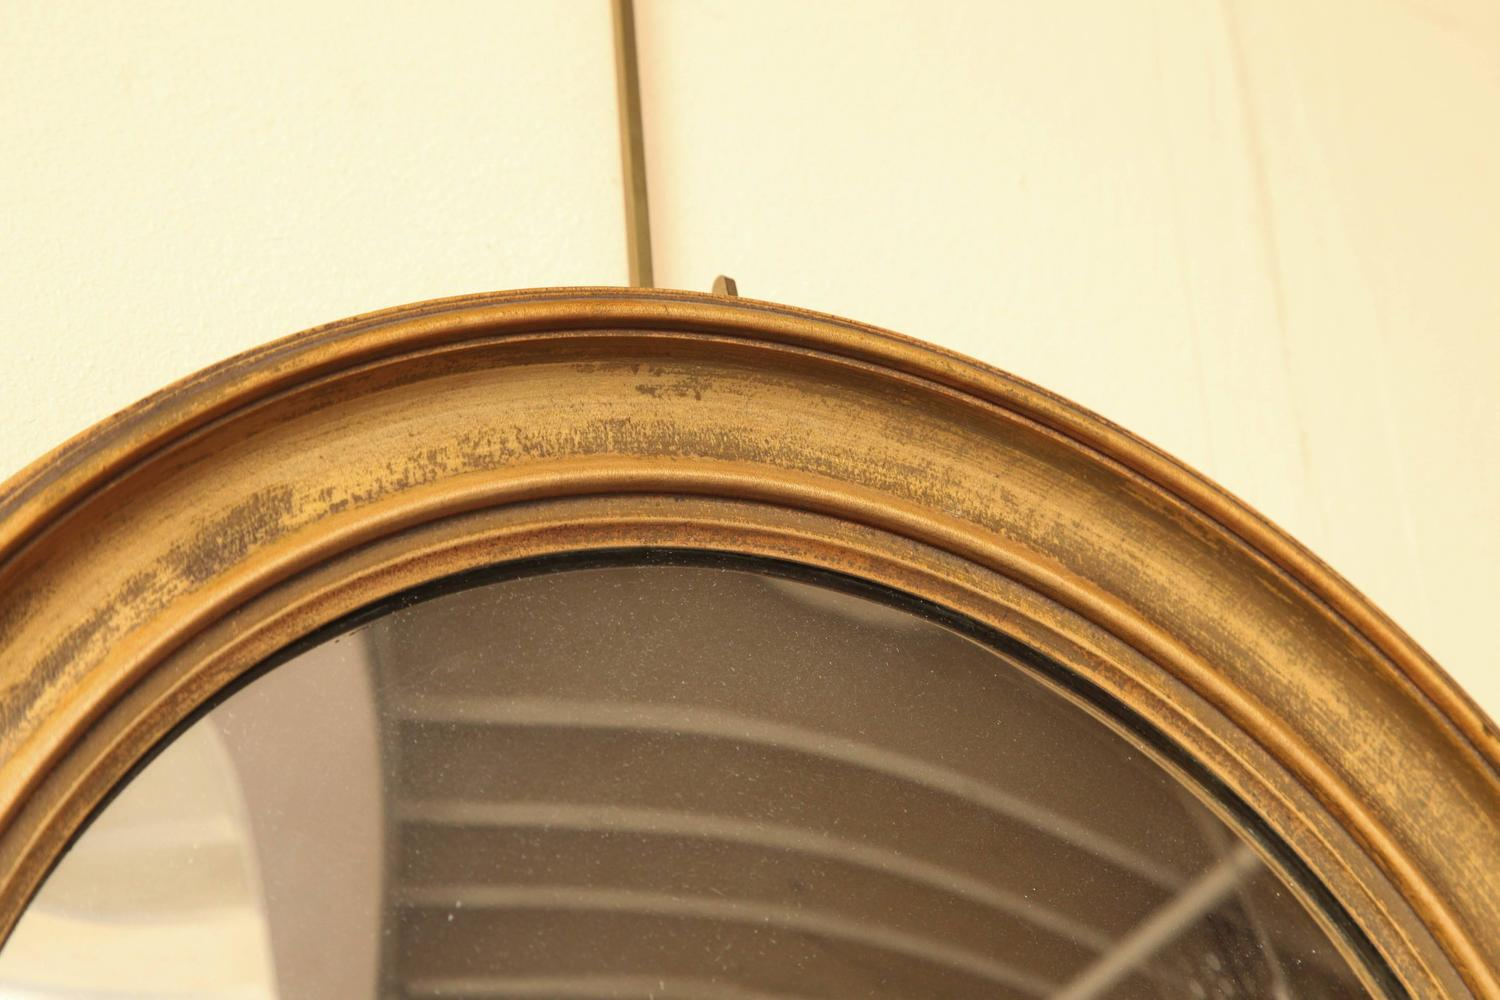 Late 19th century english convex mirror for sale at 1stdibs for 123 william street 19th floor new york ny 10038